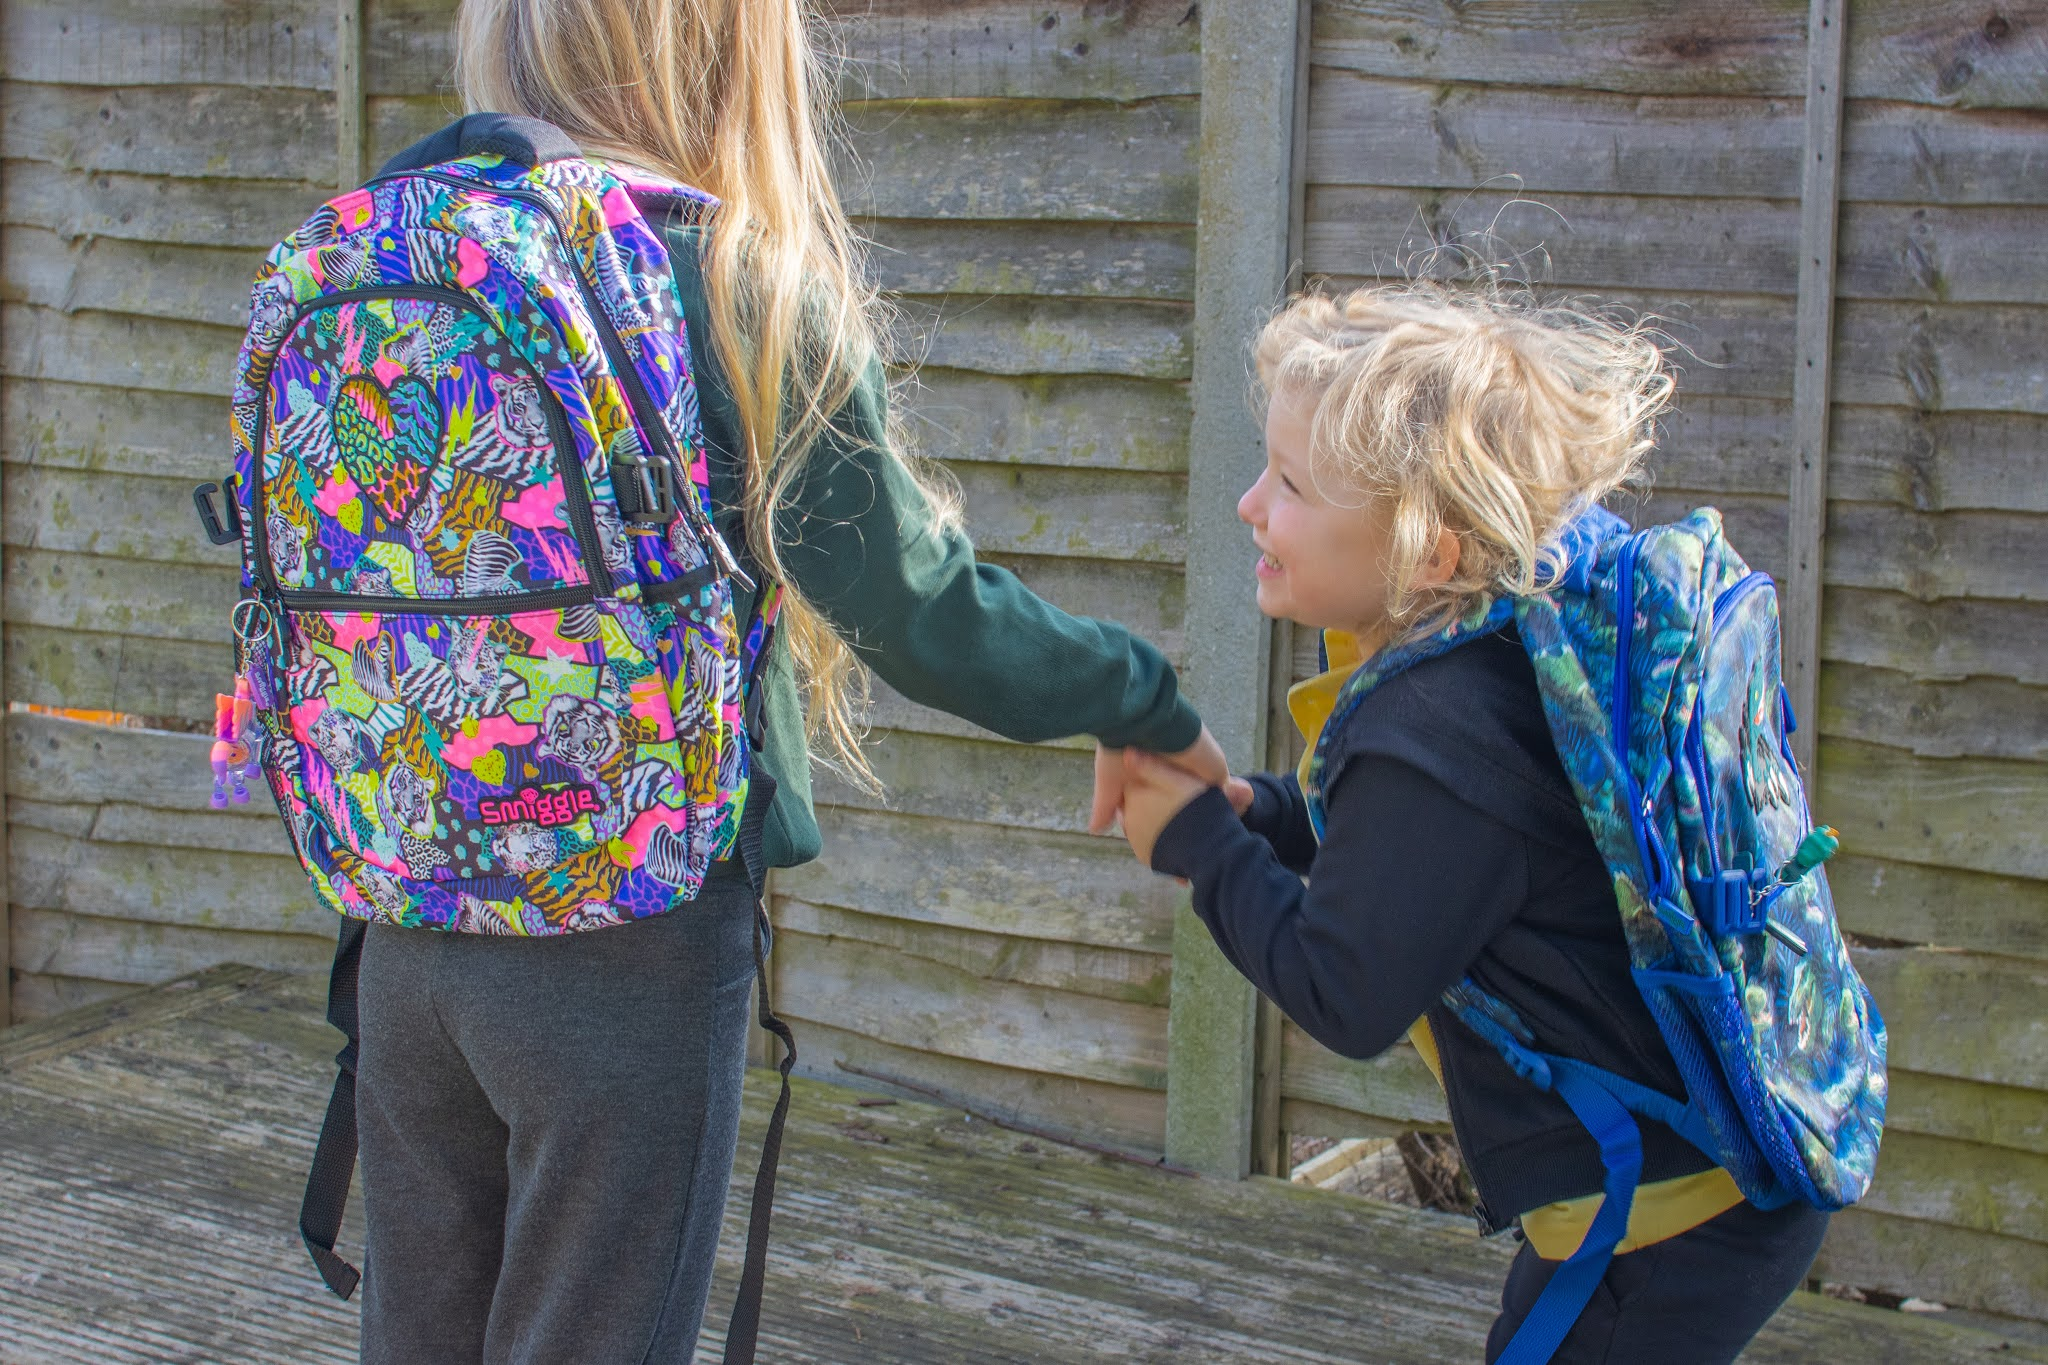 Two sisters standing next to each other in school uniform, the younger one is jumping up and down. They both have Smiggle Galaxy Attach backpacks on received to review.